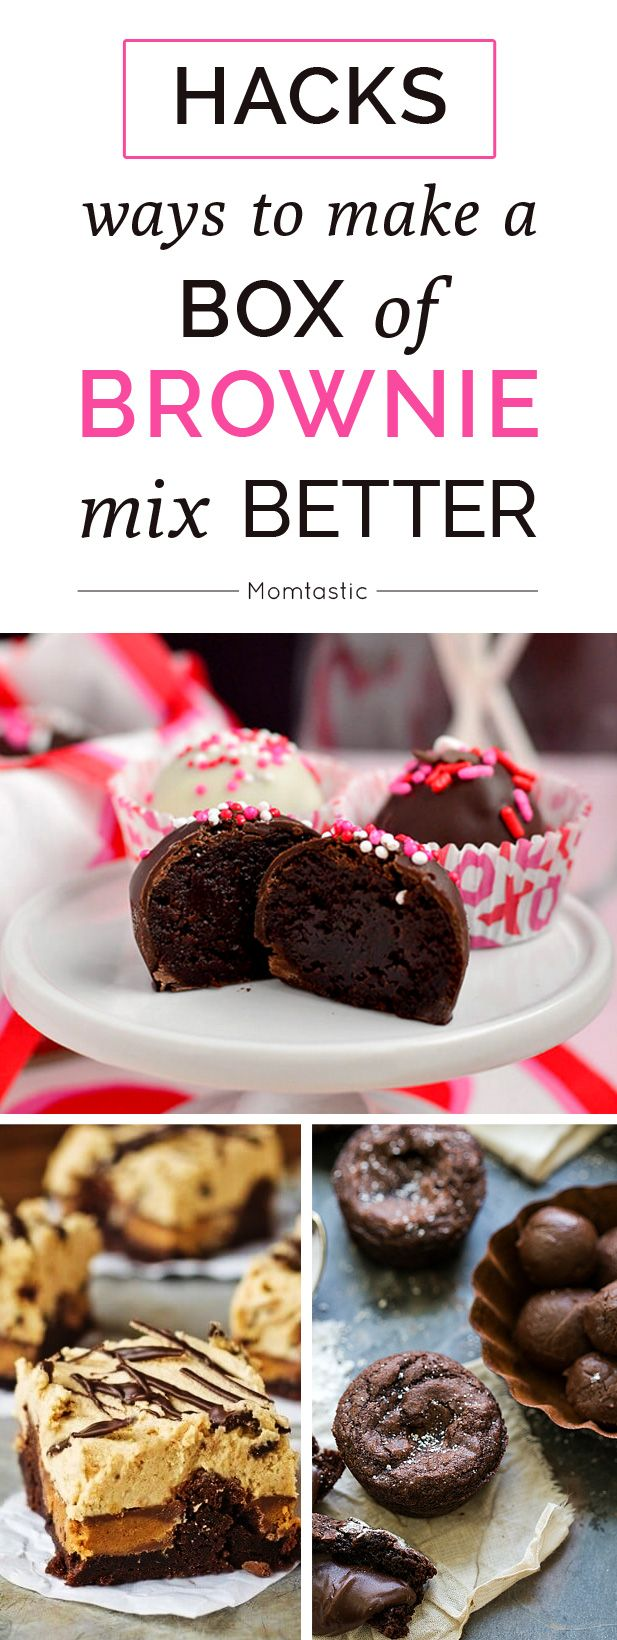 Hacks 11 ways to make a box of brownie mix better momtastic com